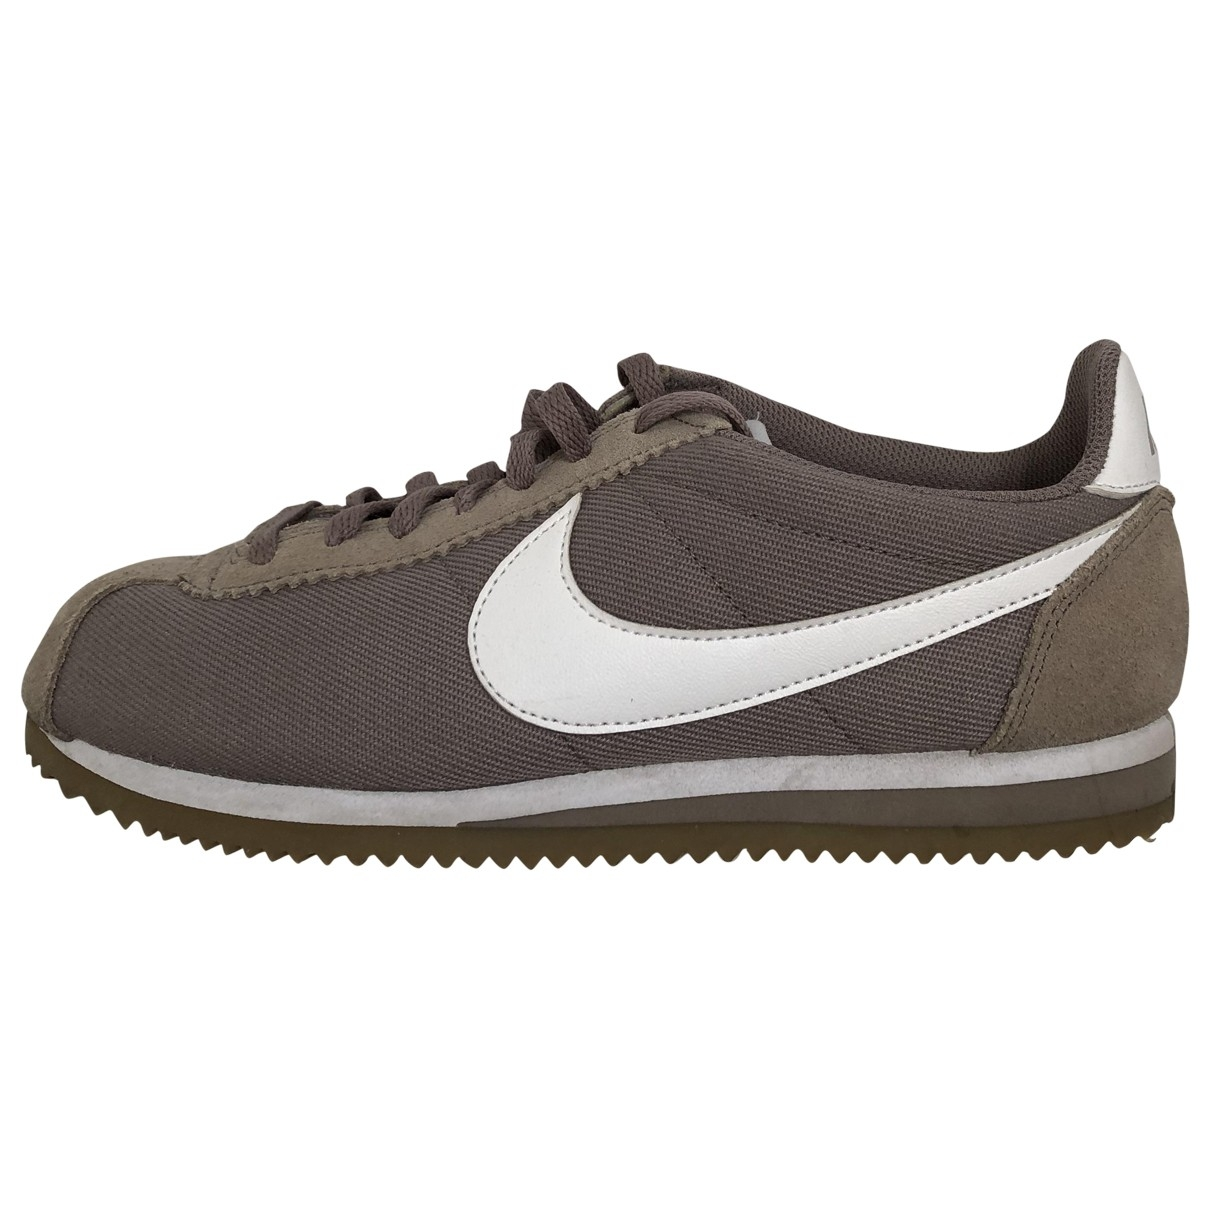 Nike Cortez Beige Cloth Trainers for Women 6 UK